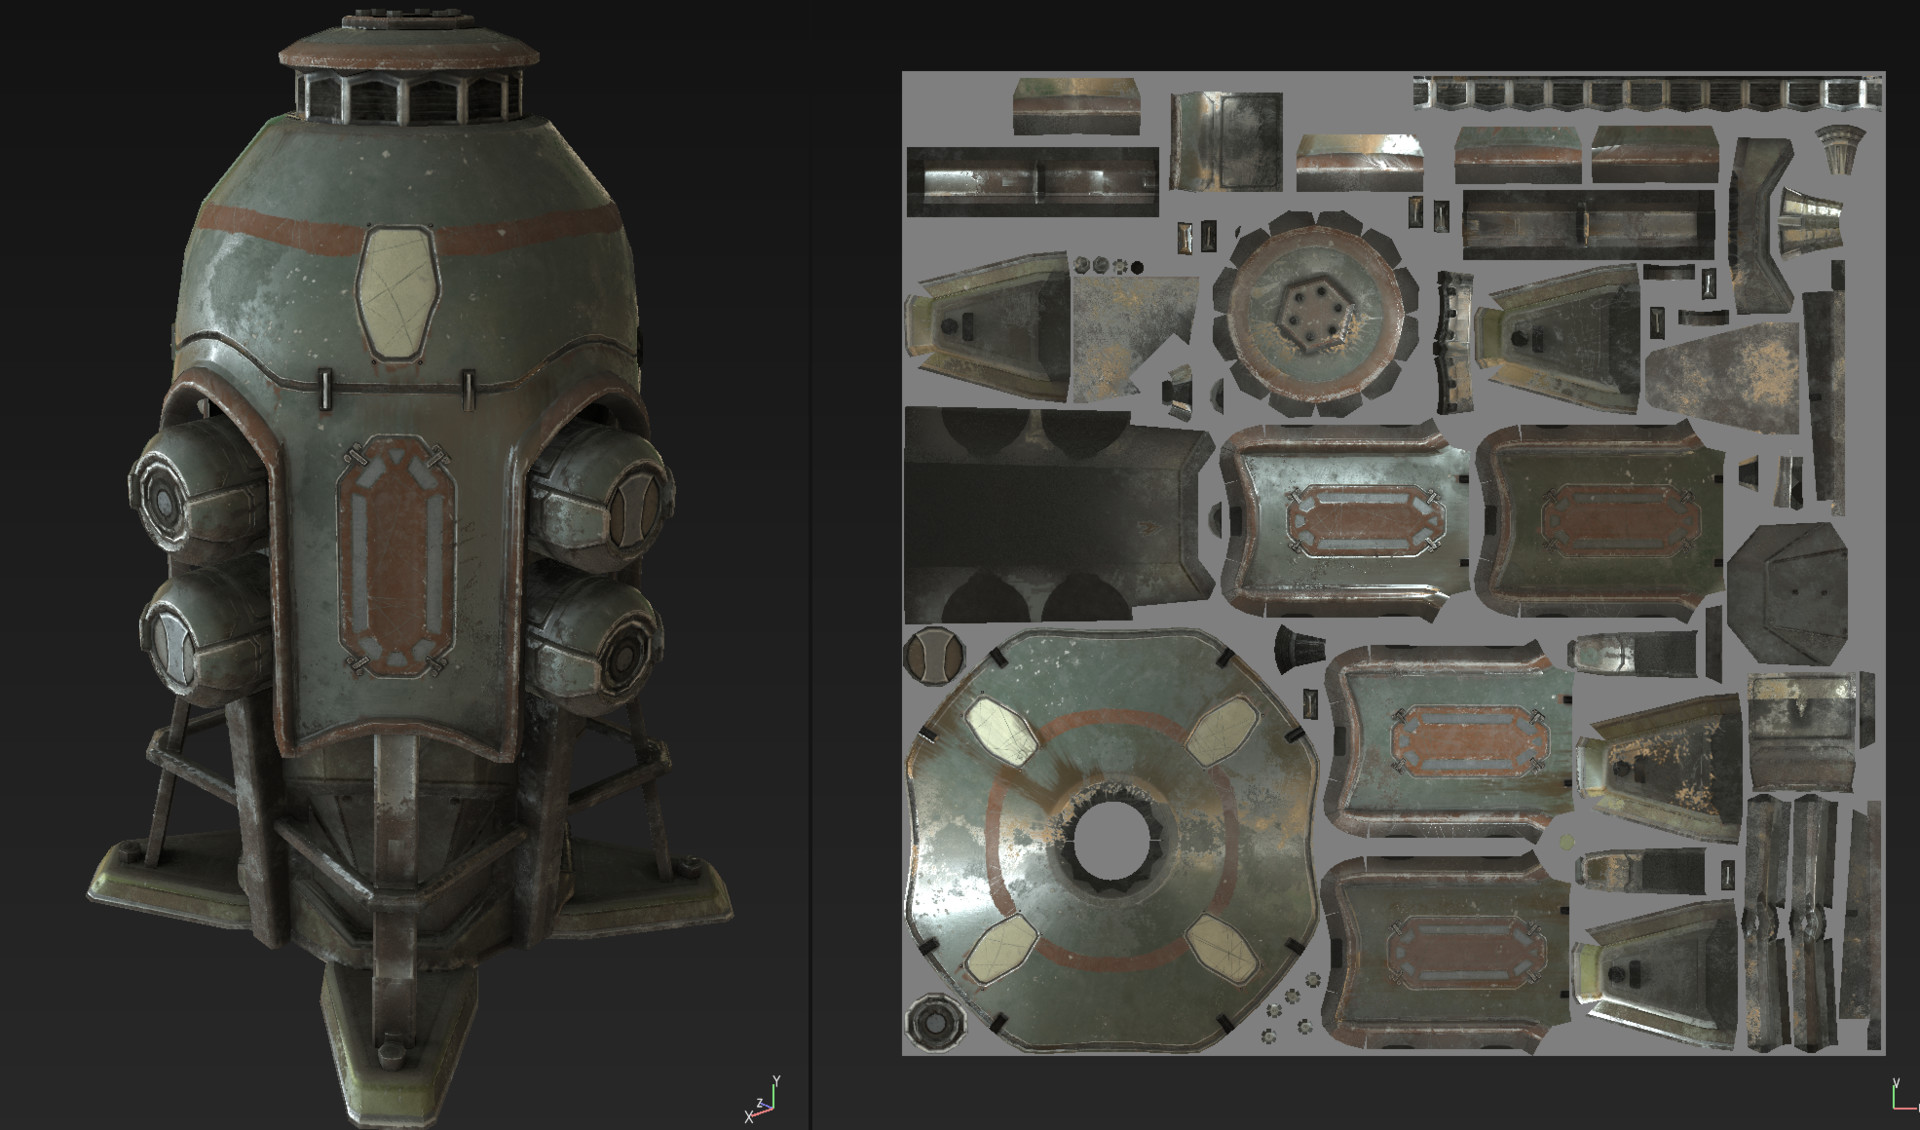 artstation - energy pod - sketchfab and marmoset viewer test